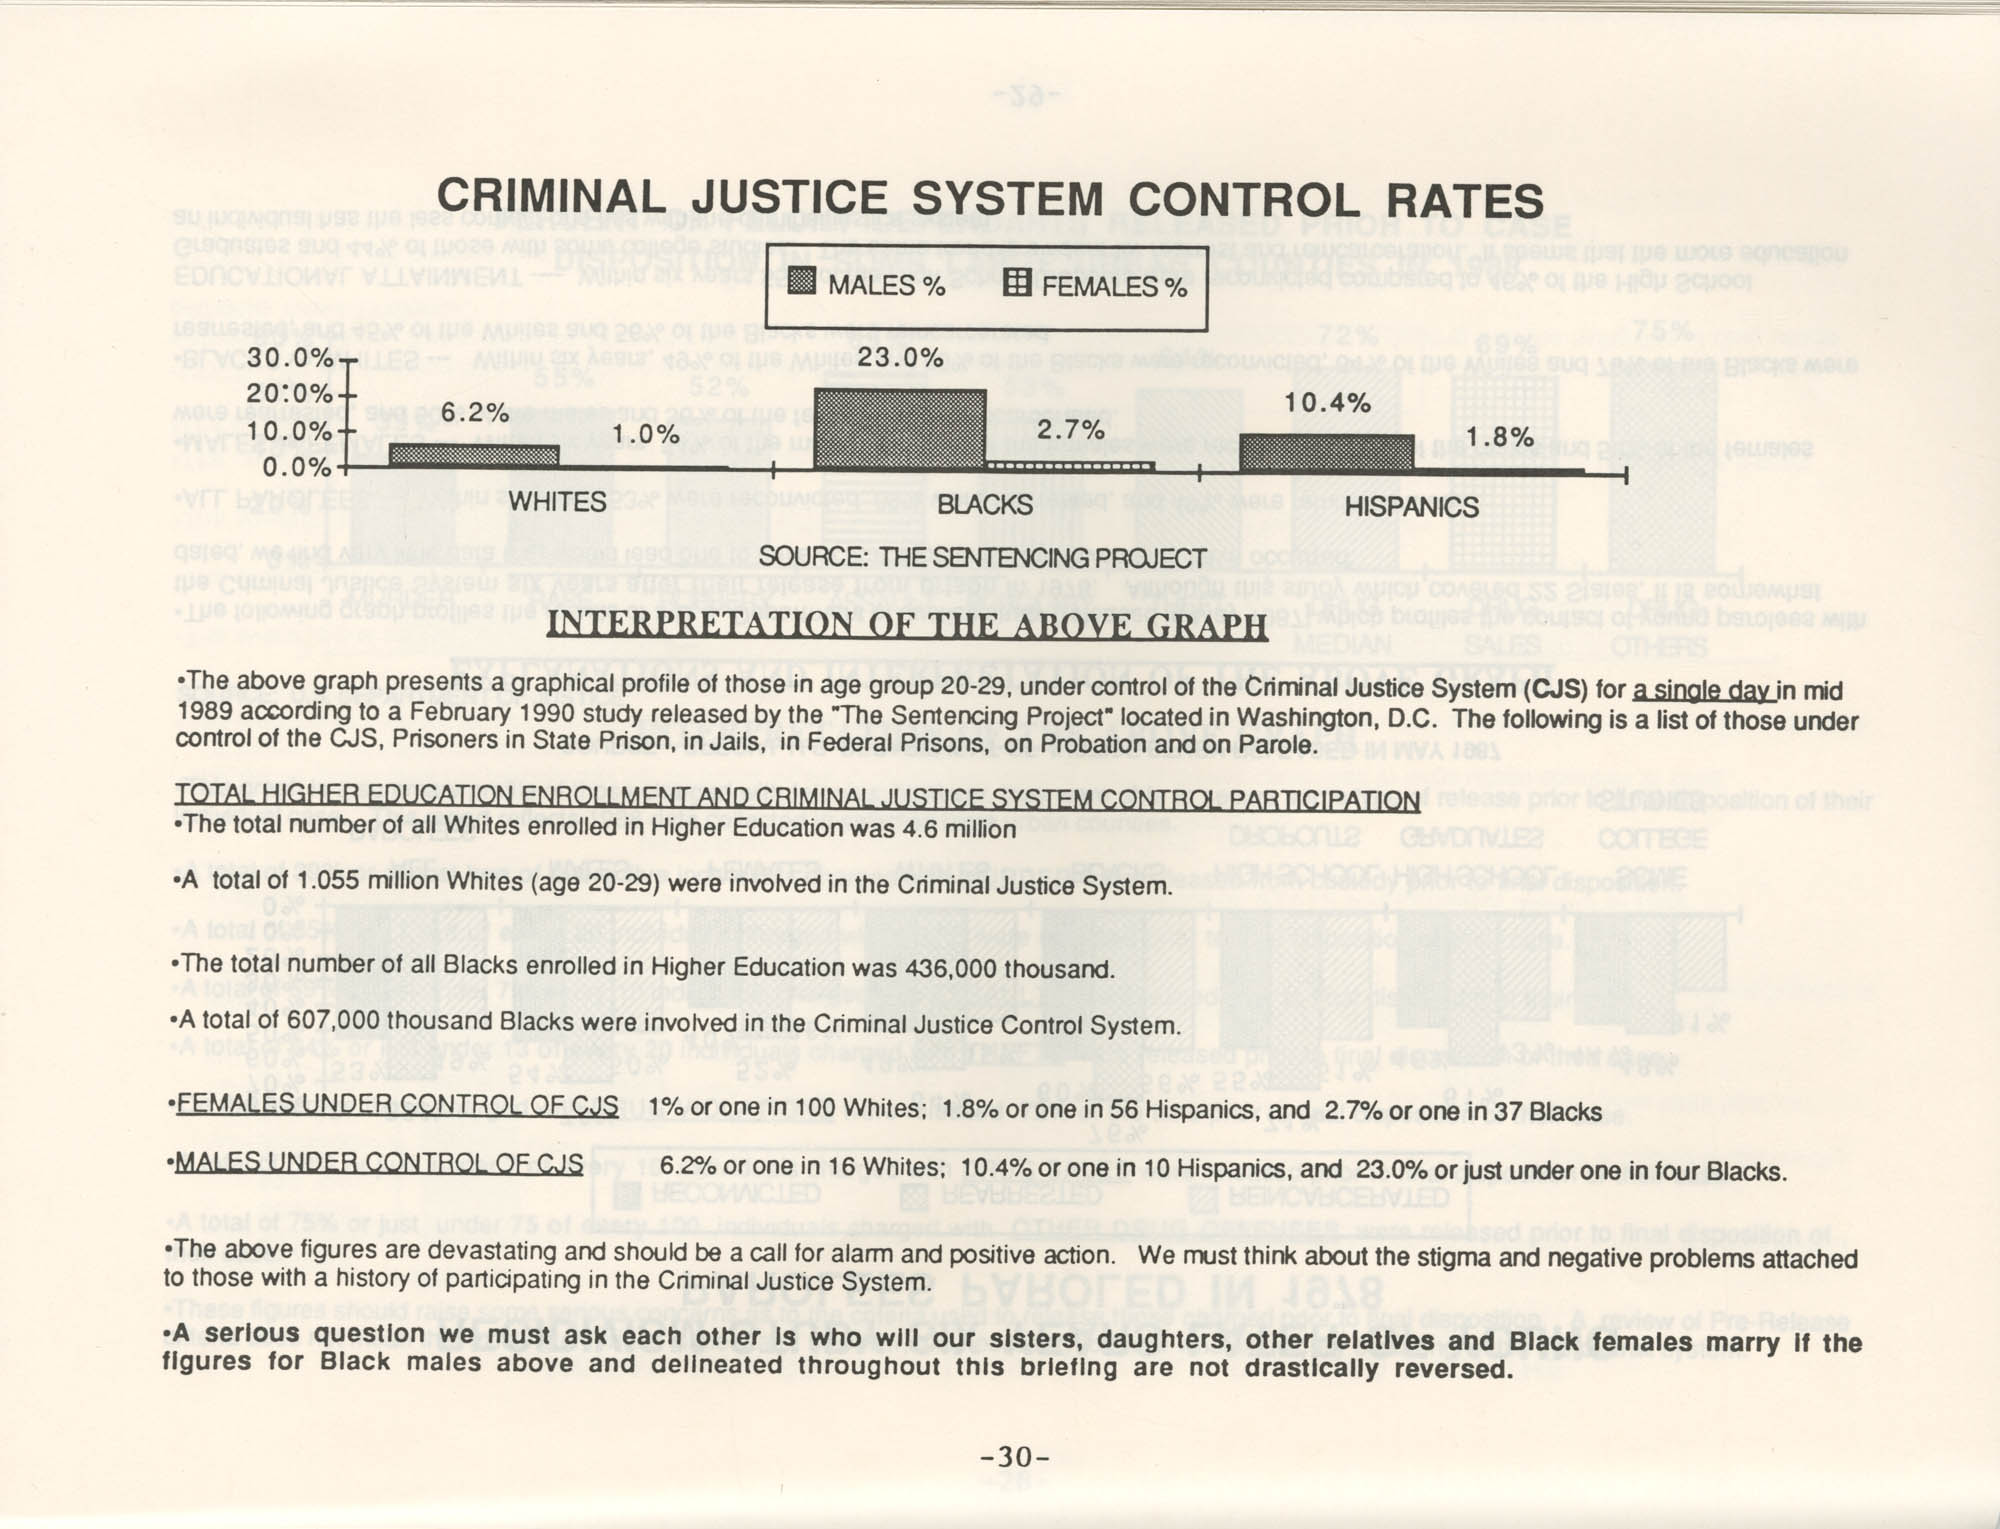 Crime and Criminal Activities in the U.S.A., NAACP National Board of Directors, Page 30